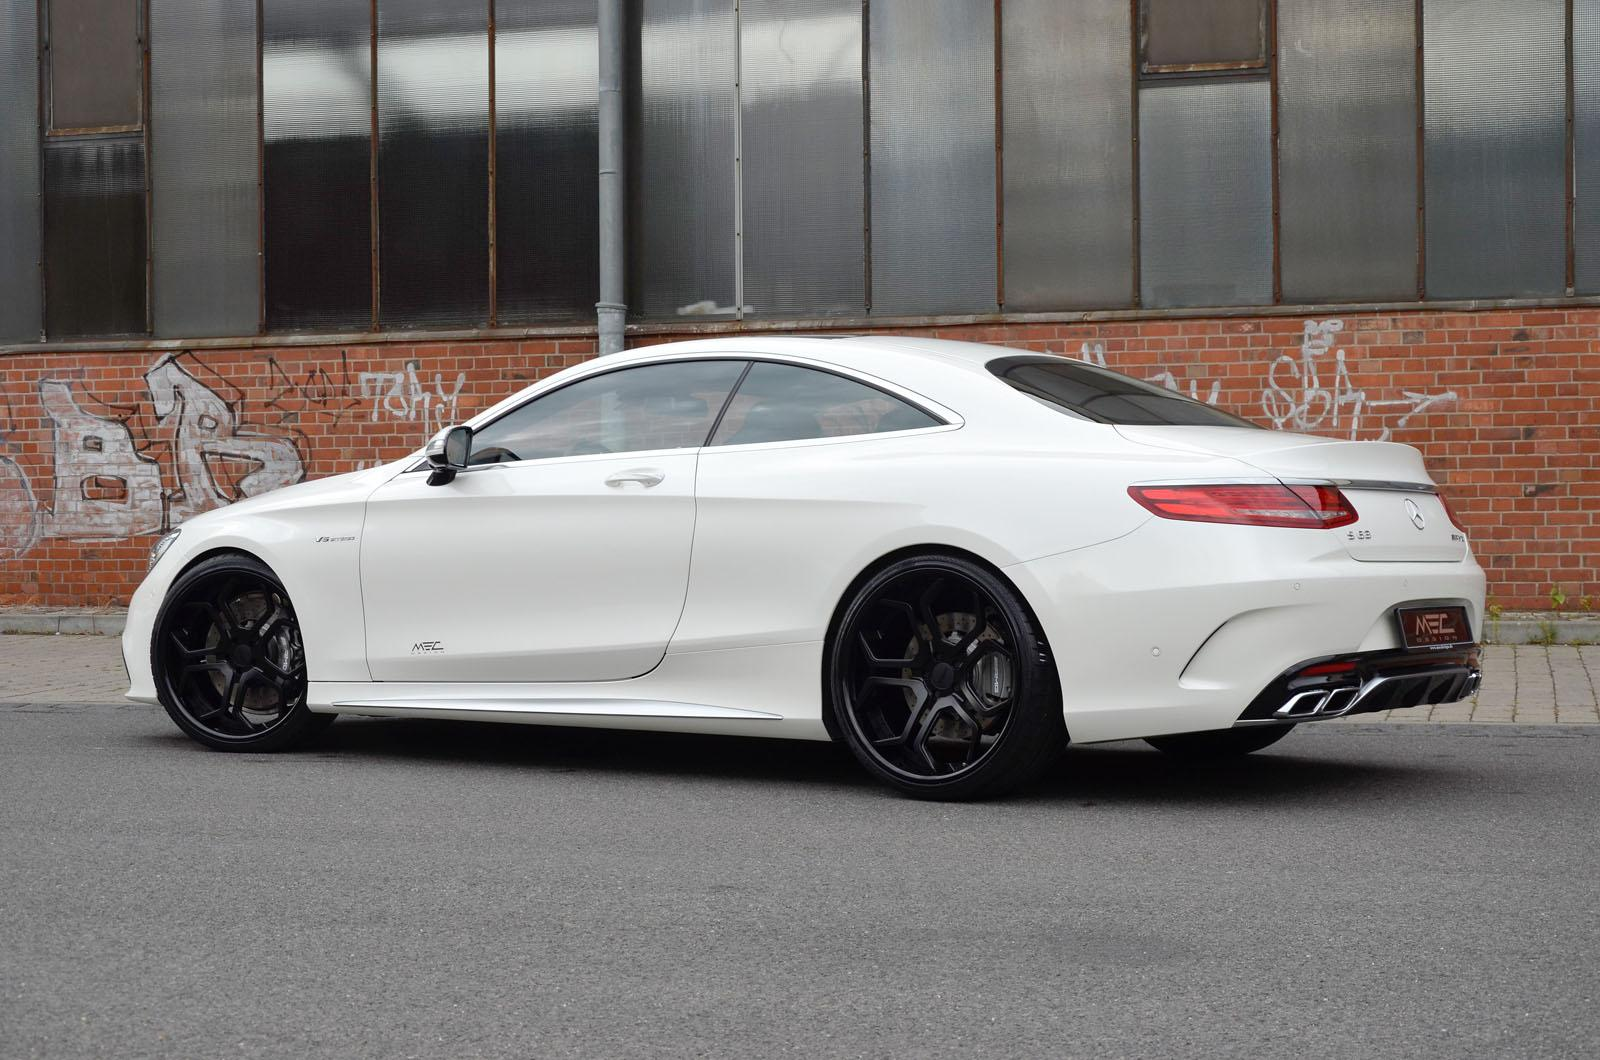 Mec design sharpens mercedes s 63 amg coupe for Mercedes a klasse amg interieur